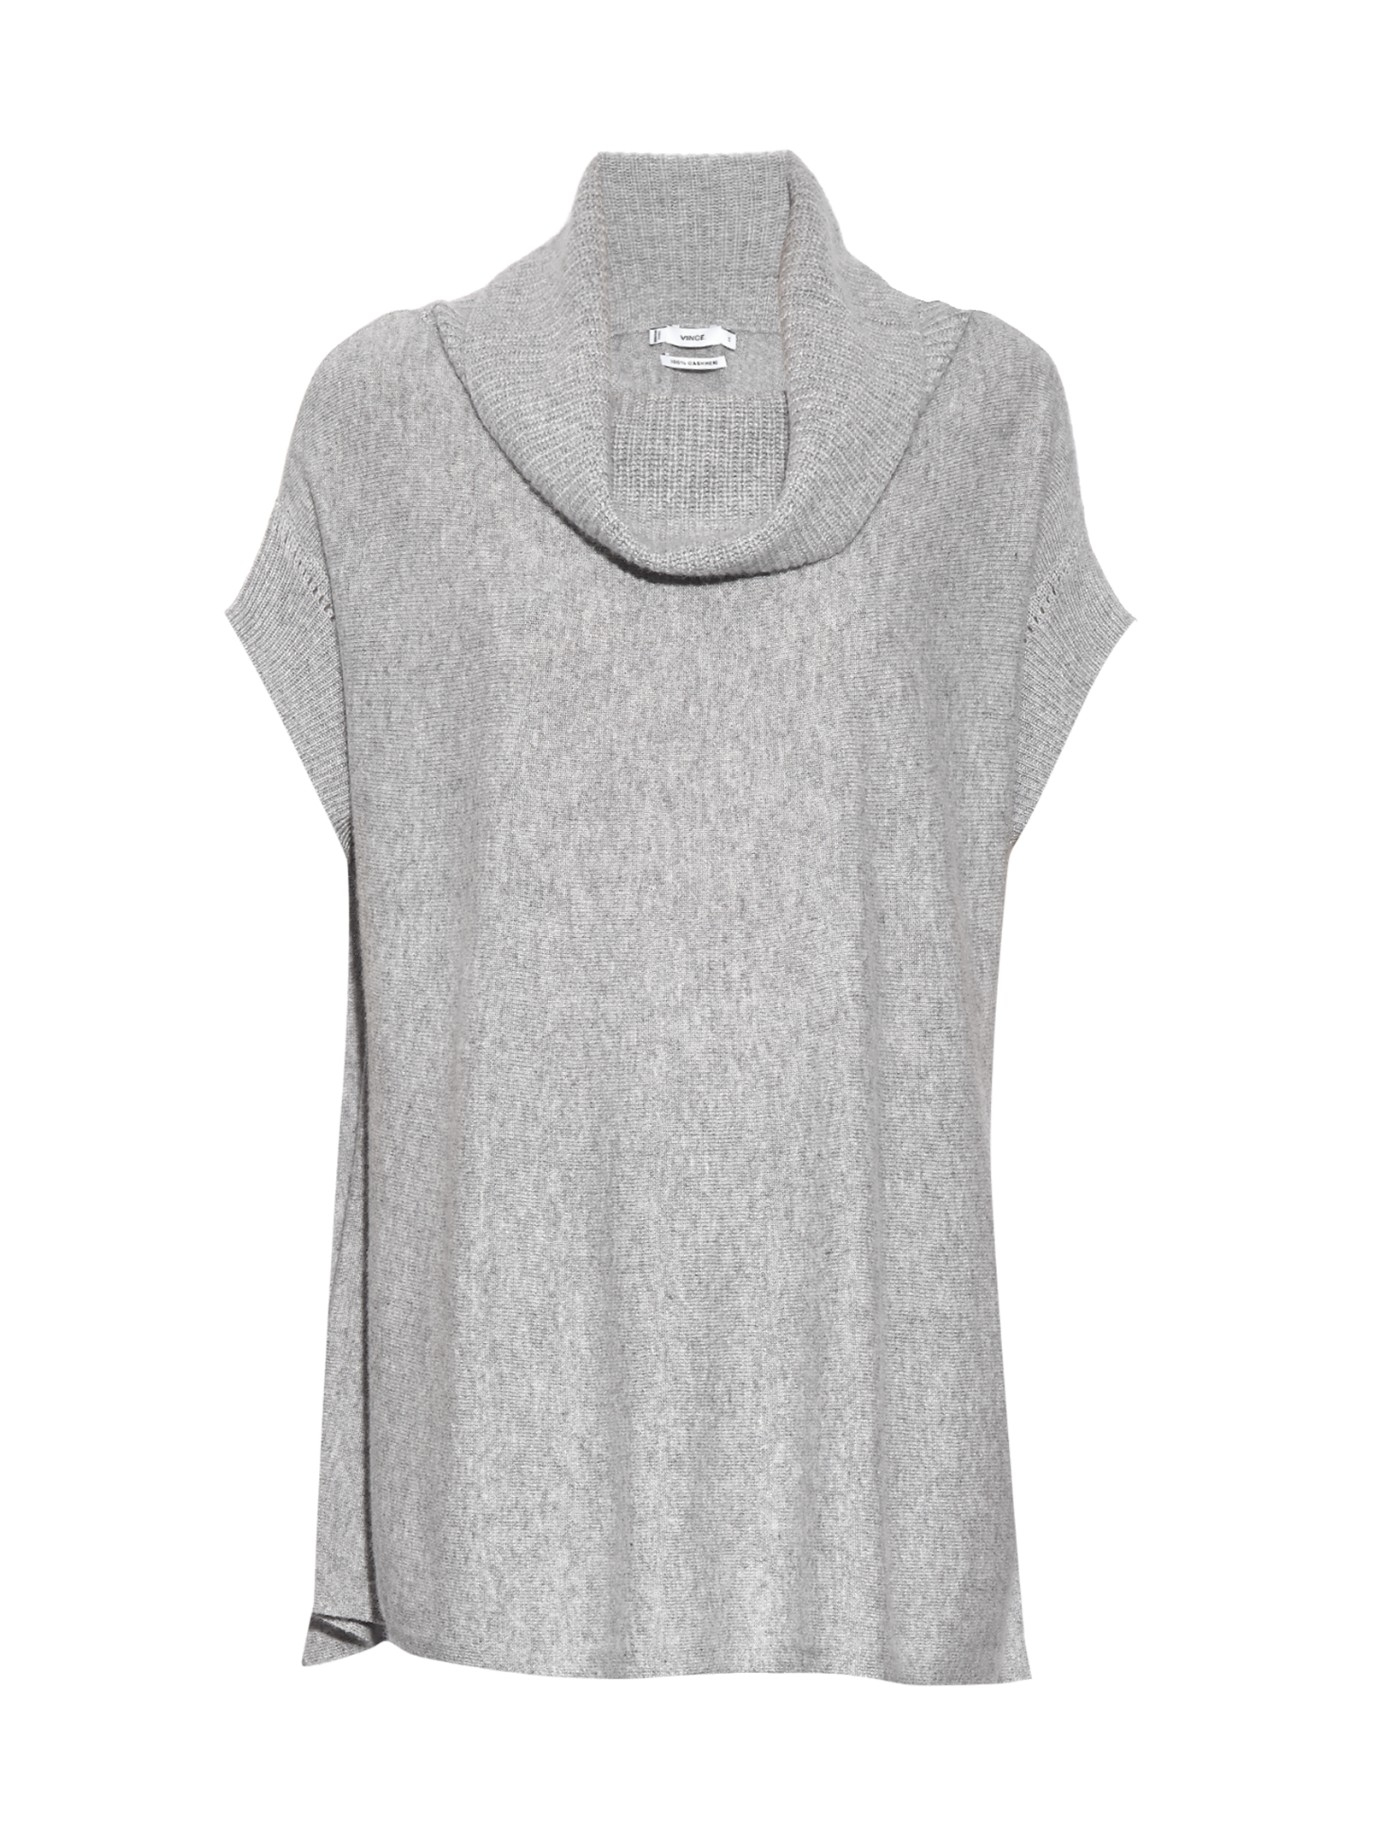 Vince Sleeveless Cashmere-knit Sweater in Gray | Lyst